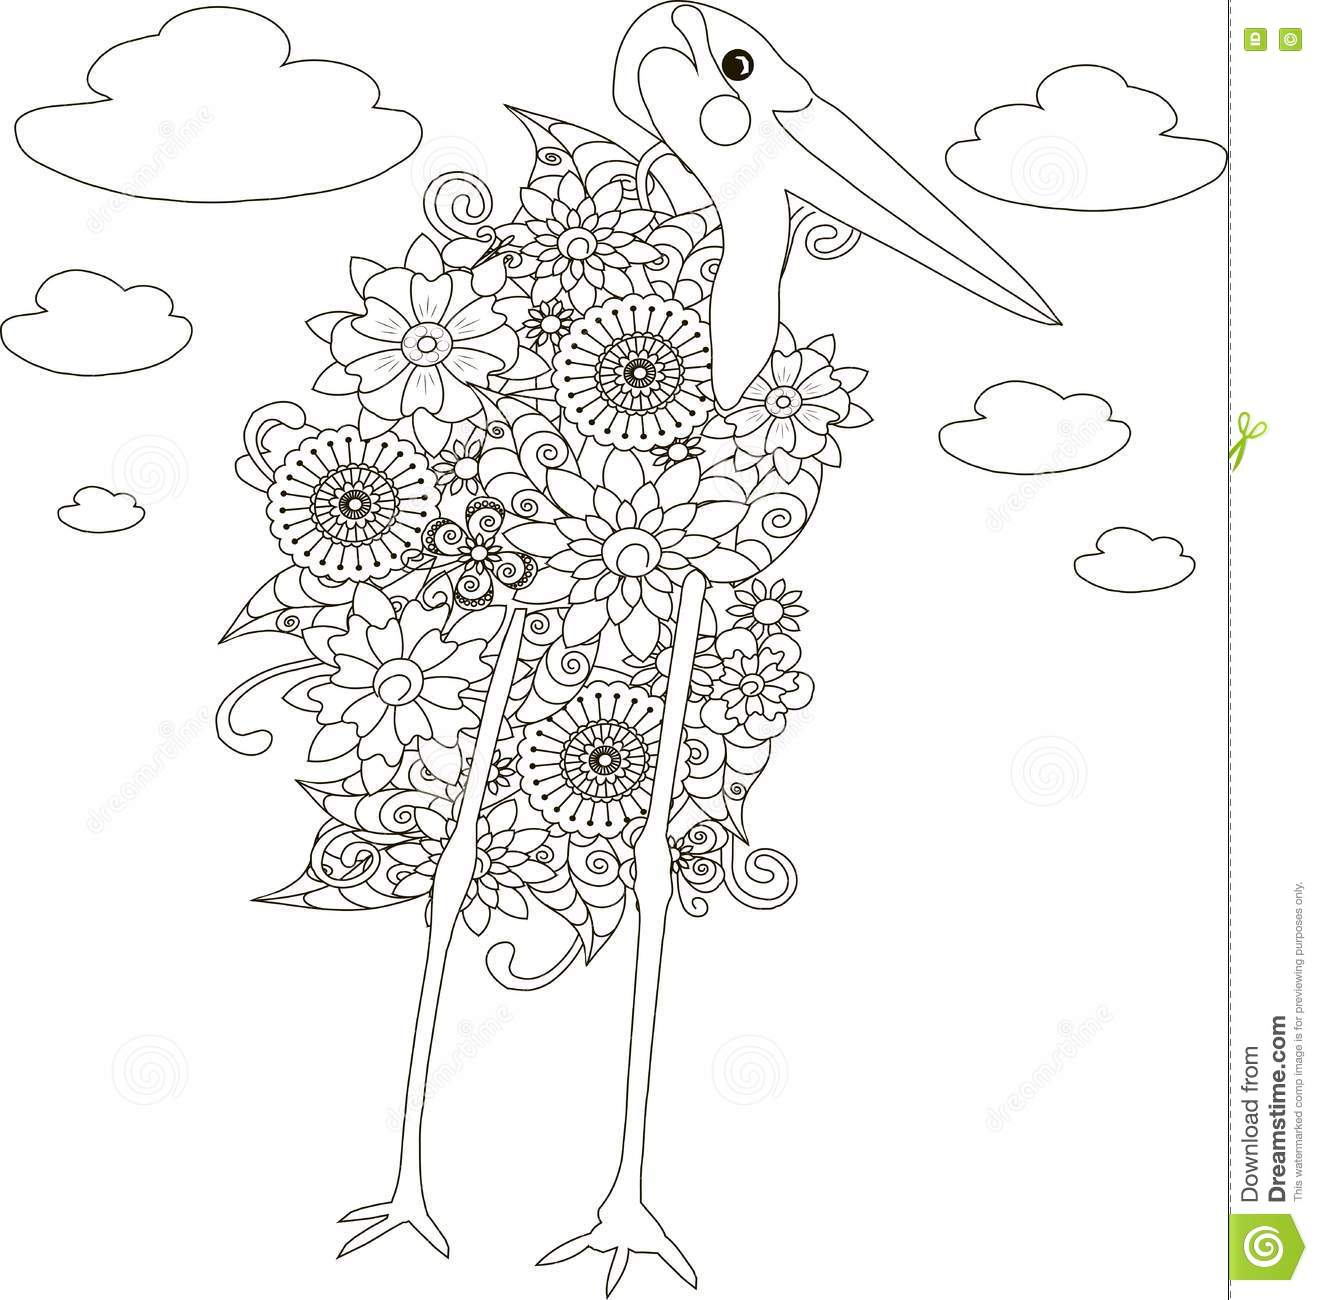 flowers marabou stork coloring page anti stress stock vector